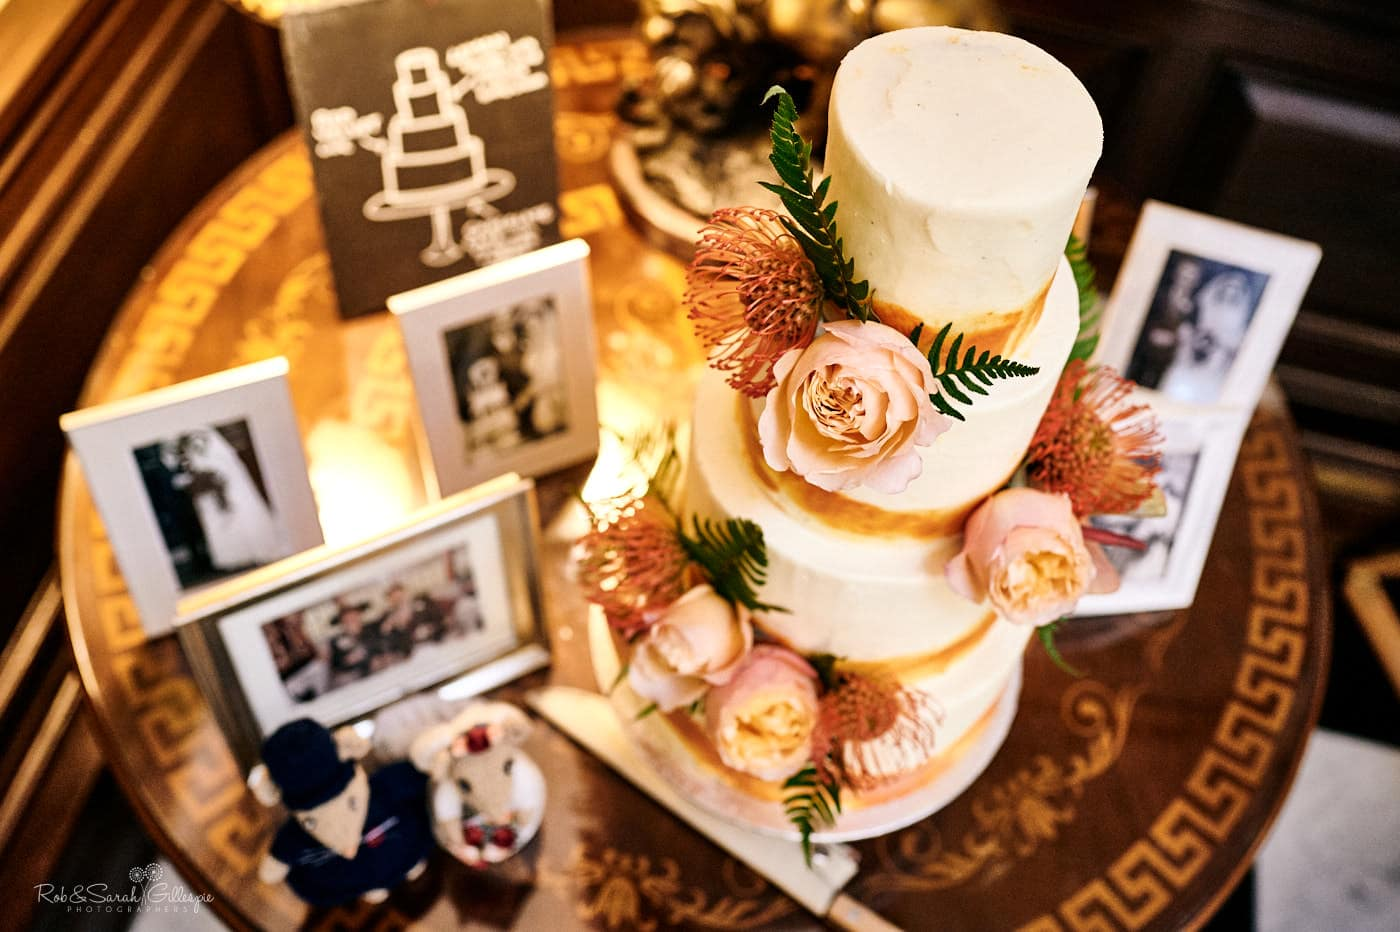 Beautiful wedding cake with white and orange icing, decorated with flowers and surrounded by old wedding photos of relatives